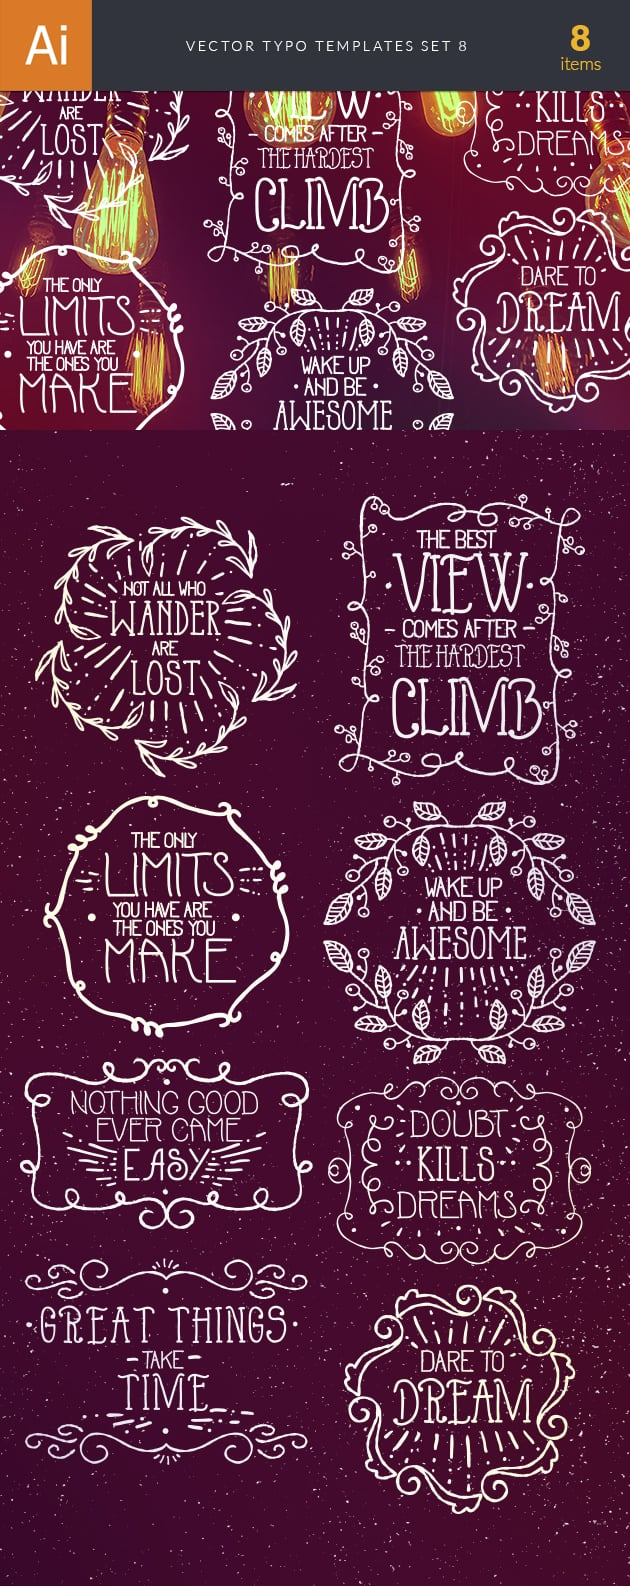 Vector Typography Templates Set 8 vector typography templates 8 preview large